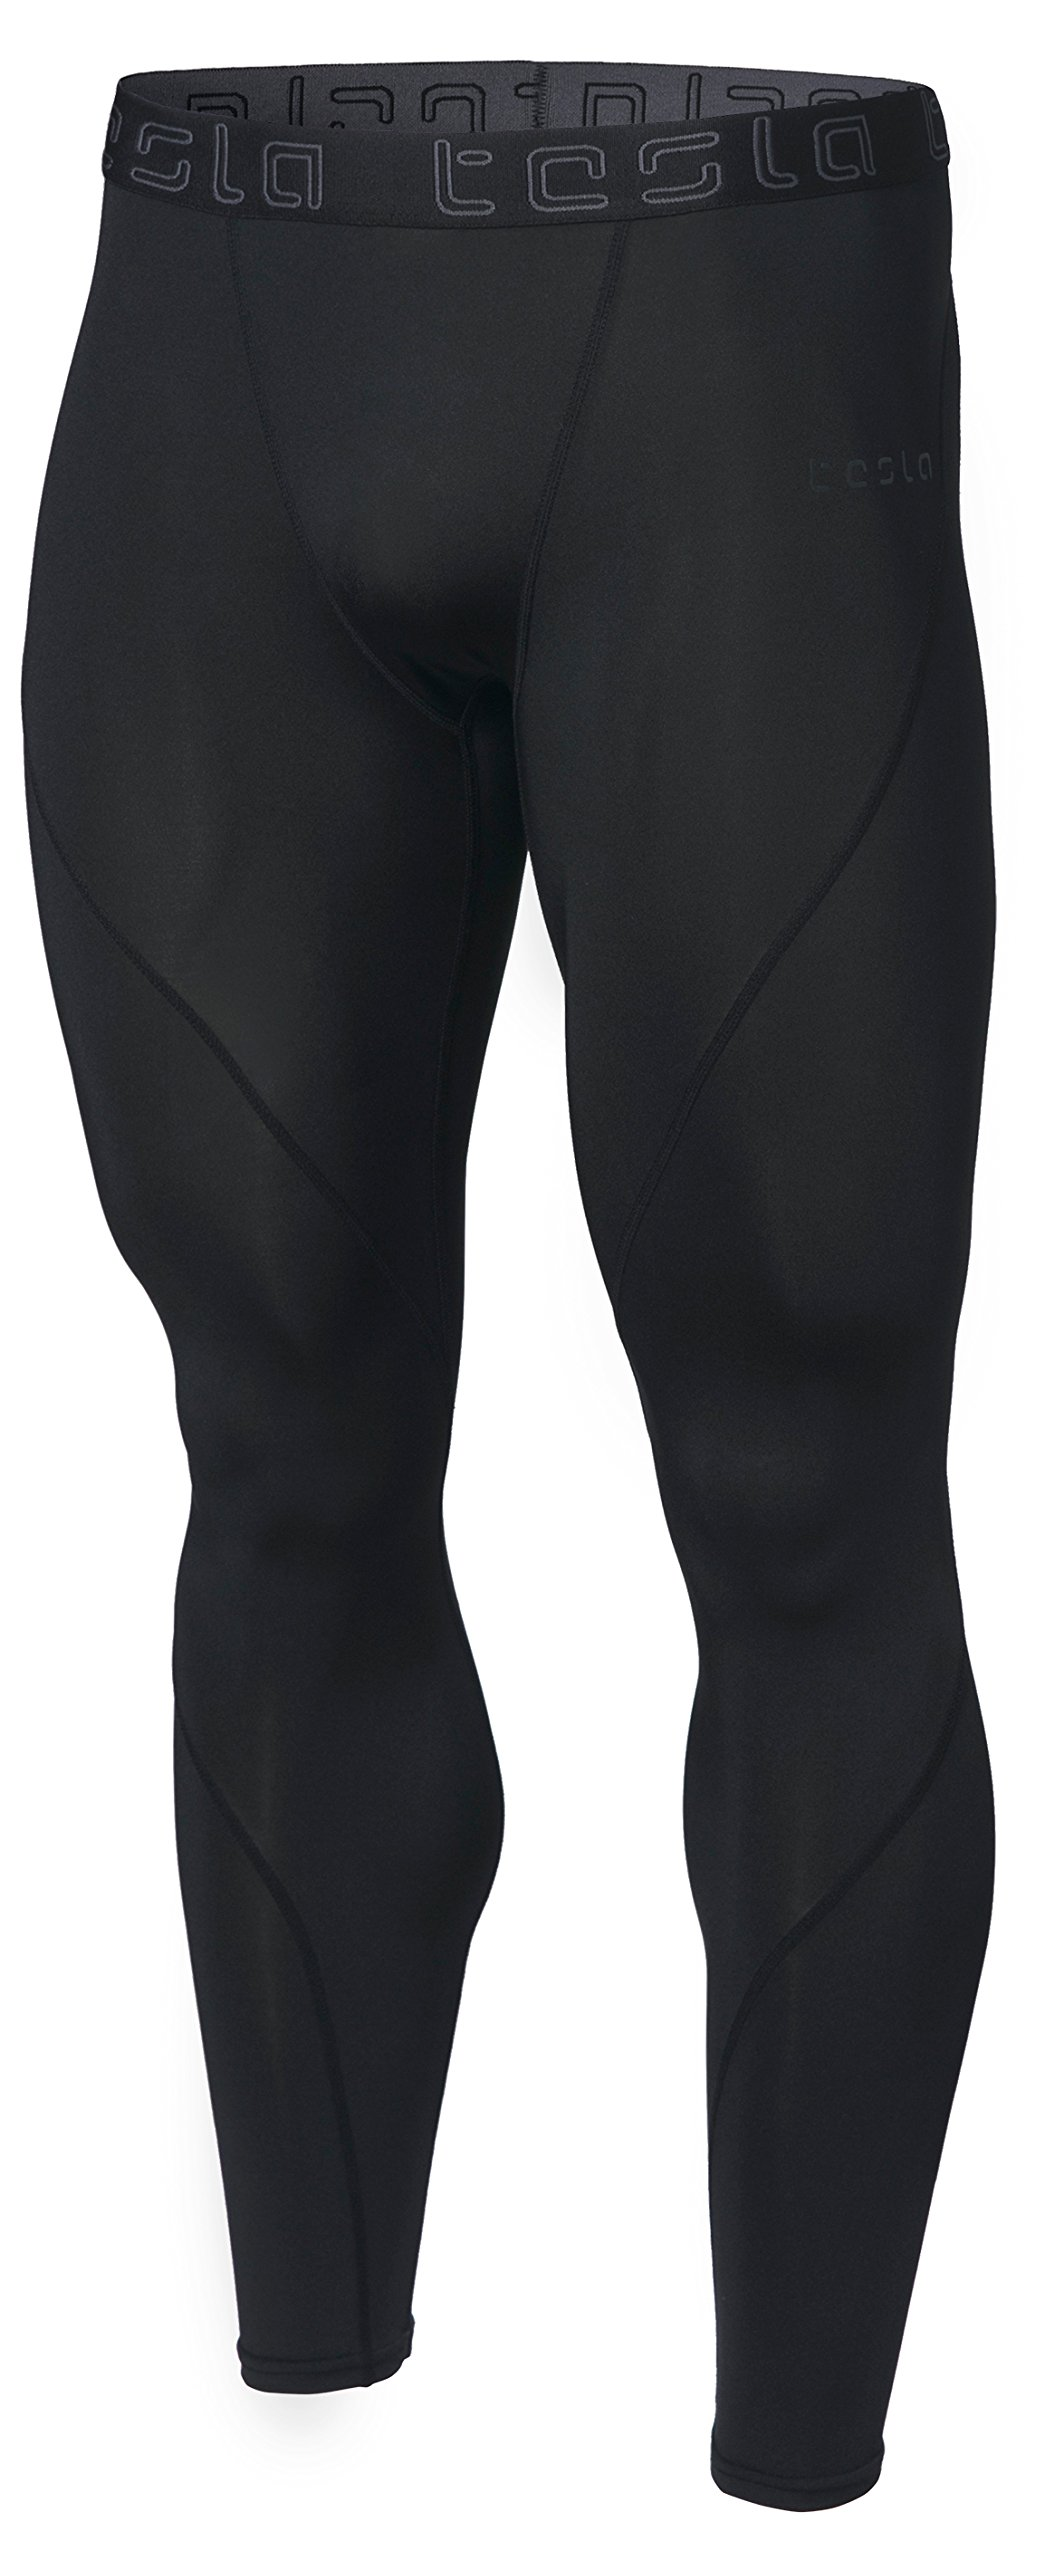 TSLA Men's Compression Pants Running Baselayer Cool Dry Sports Tights, Athletic(mup19) - Black, Medium